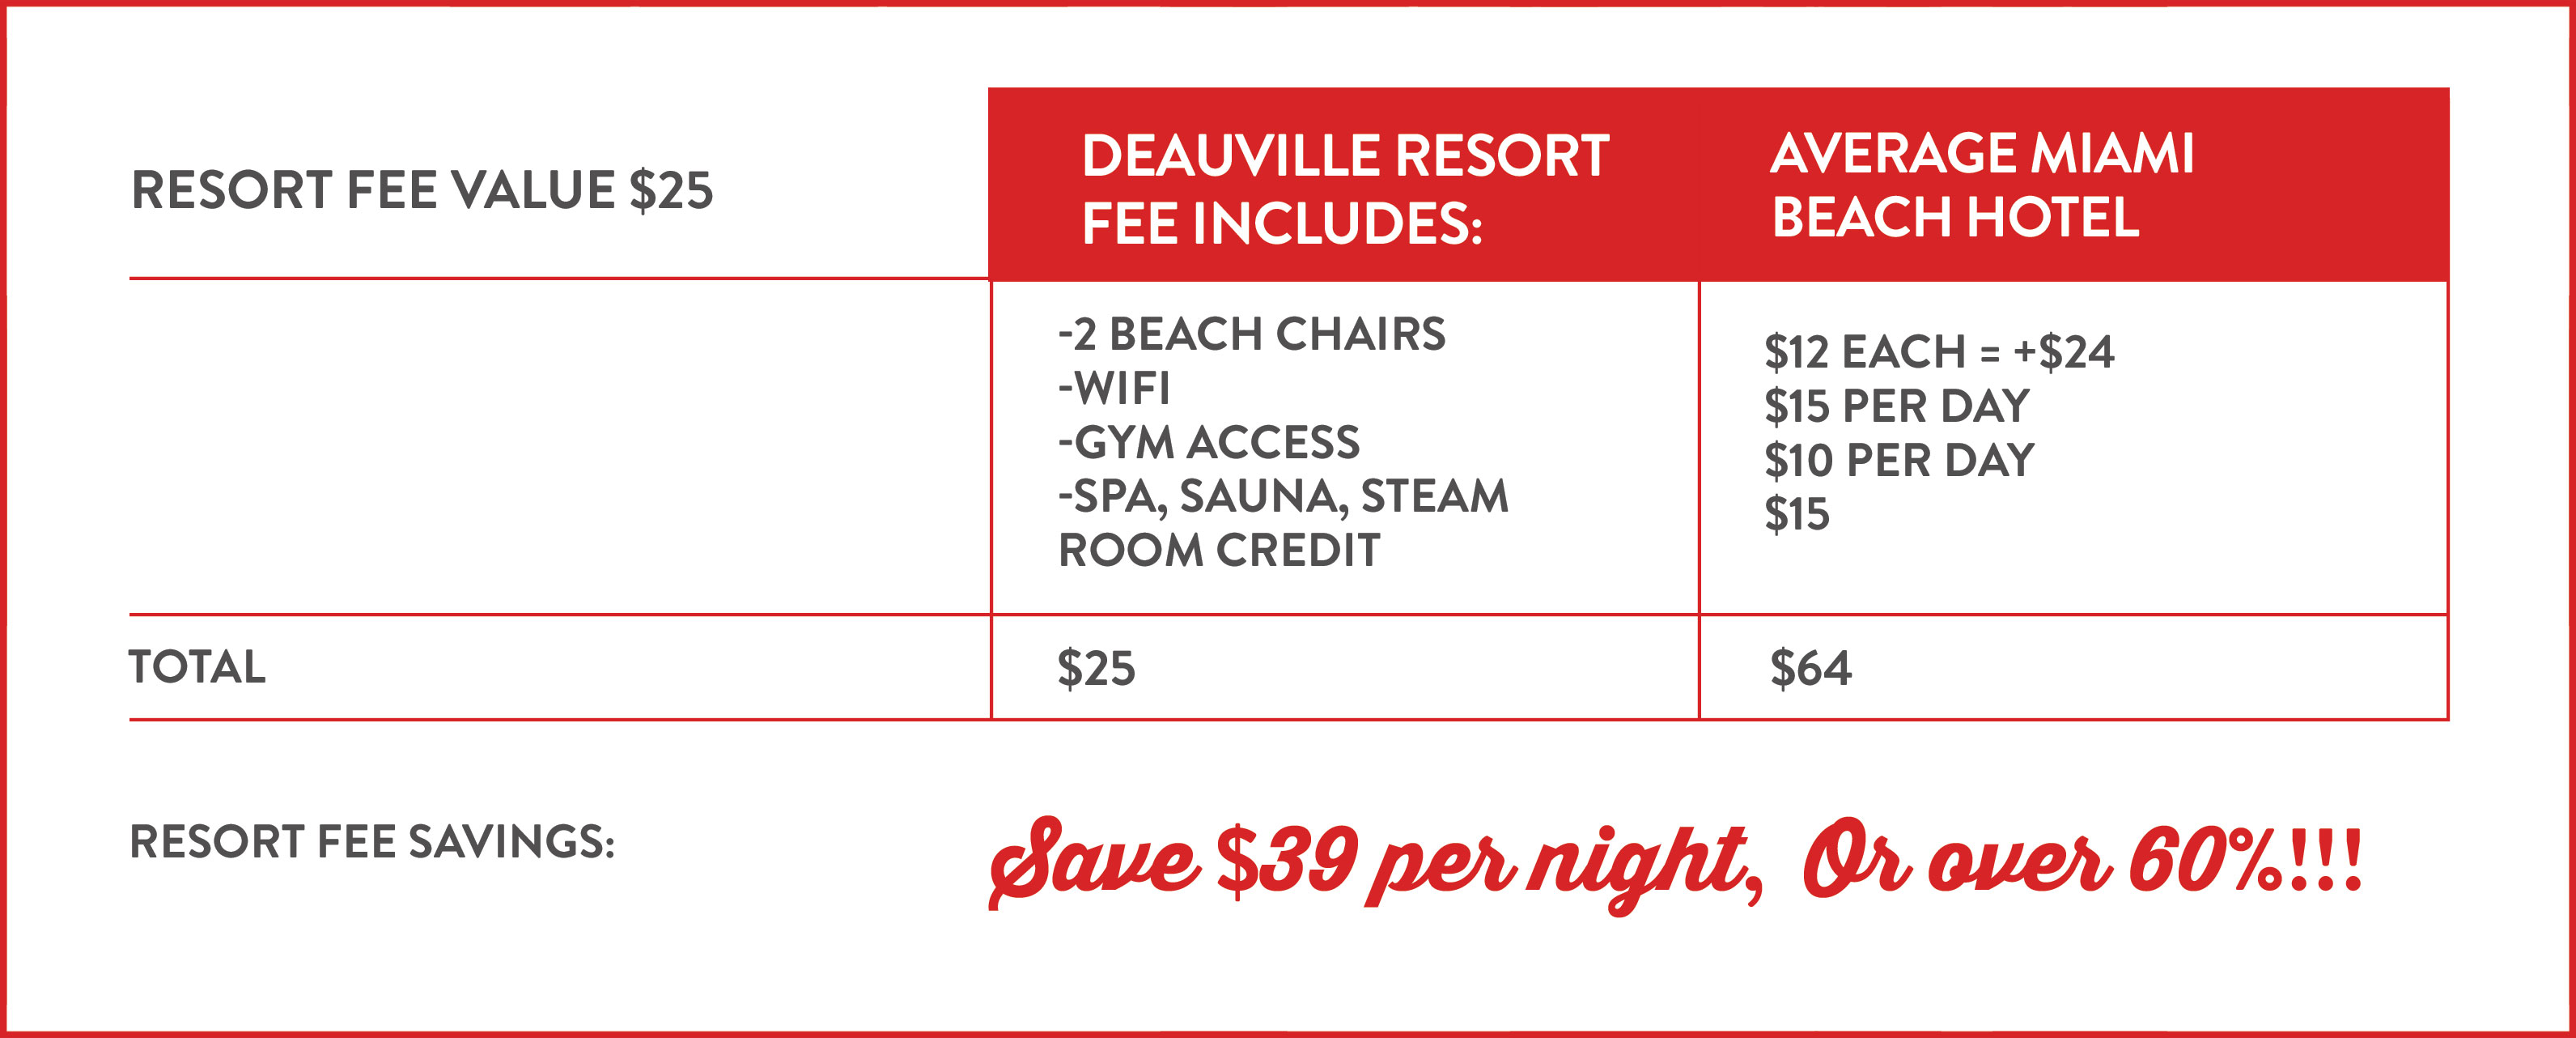 Deauville Beach Resort fee